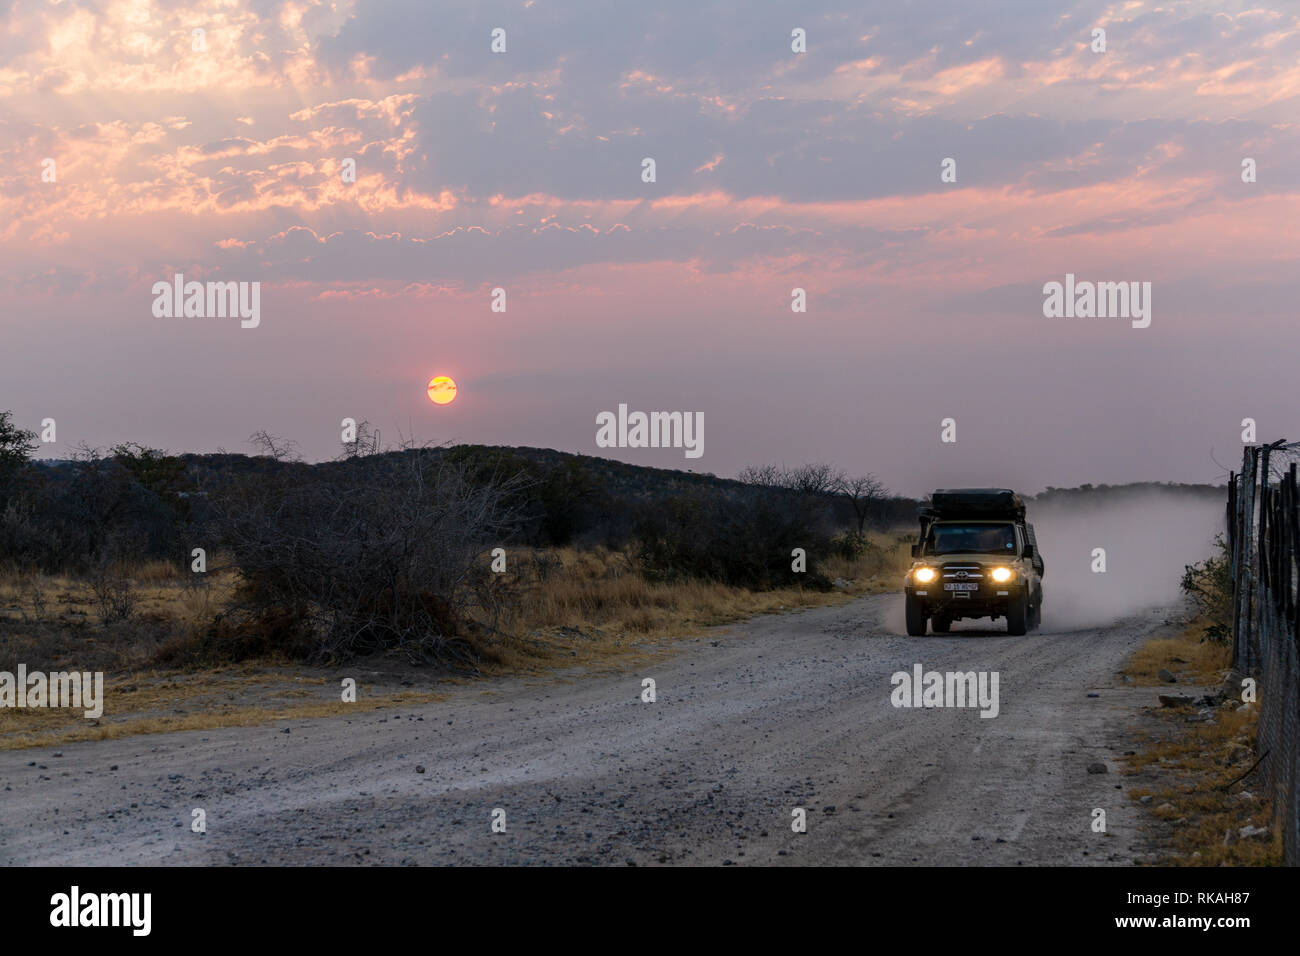 ETOSHA PAN, NAMIBIA - AUGUST 29, 2018: Driving offroad and dust clouds at African gravel road, a 4x4 track in orange purple desert landscape, Namibia, Stock Photo